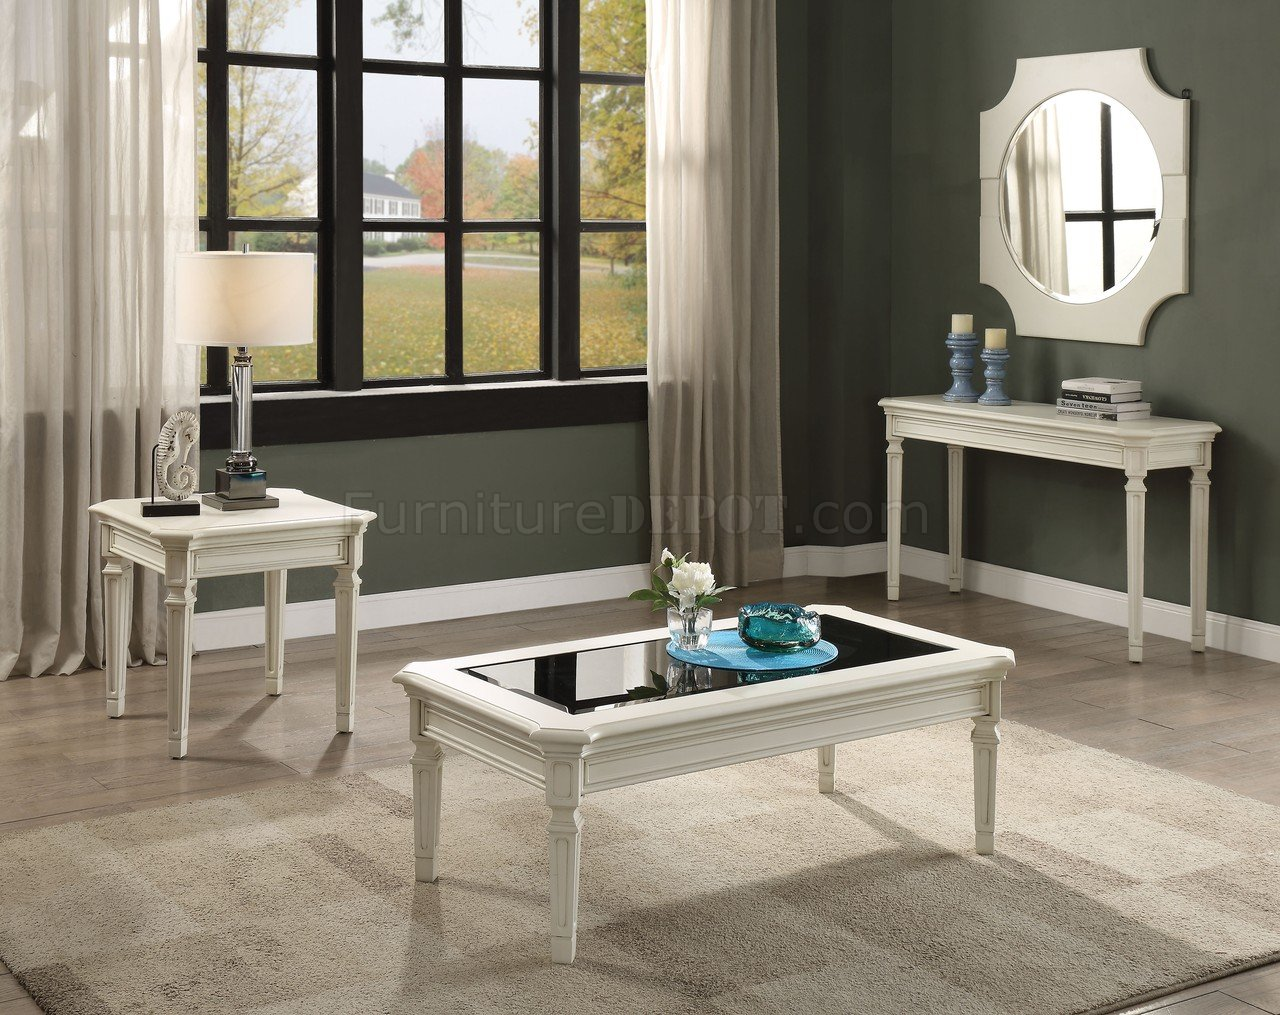 Contemporary Bedroom Set London Black By Acme Furniture: Florissa 3Pc Coffee Table Set 83090 In Antique White By Acme